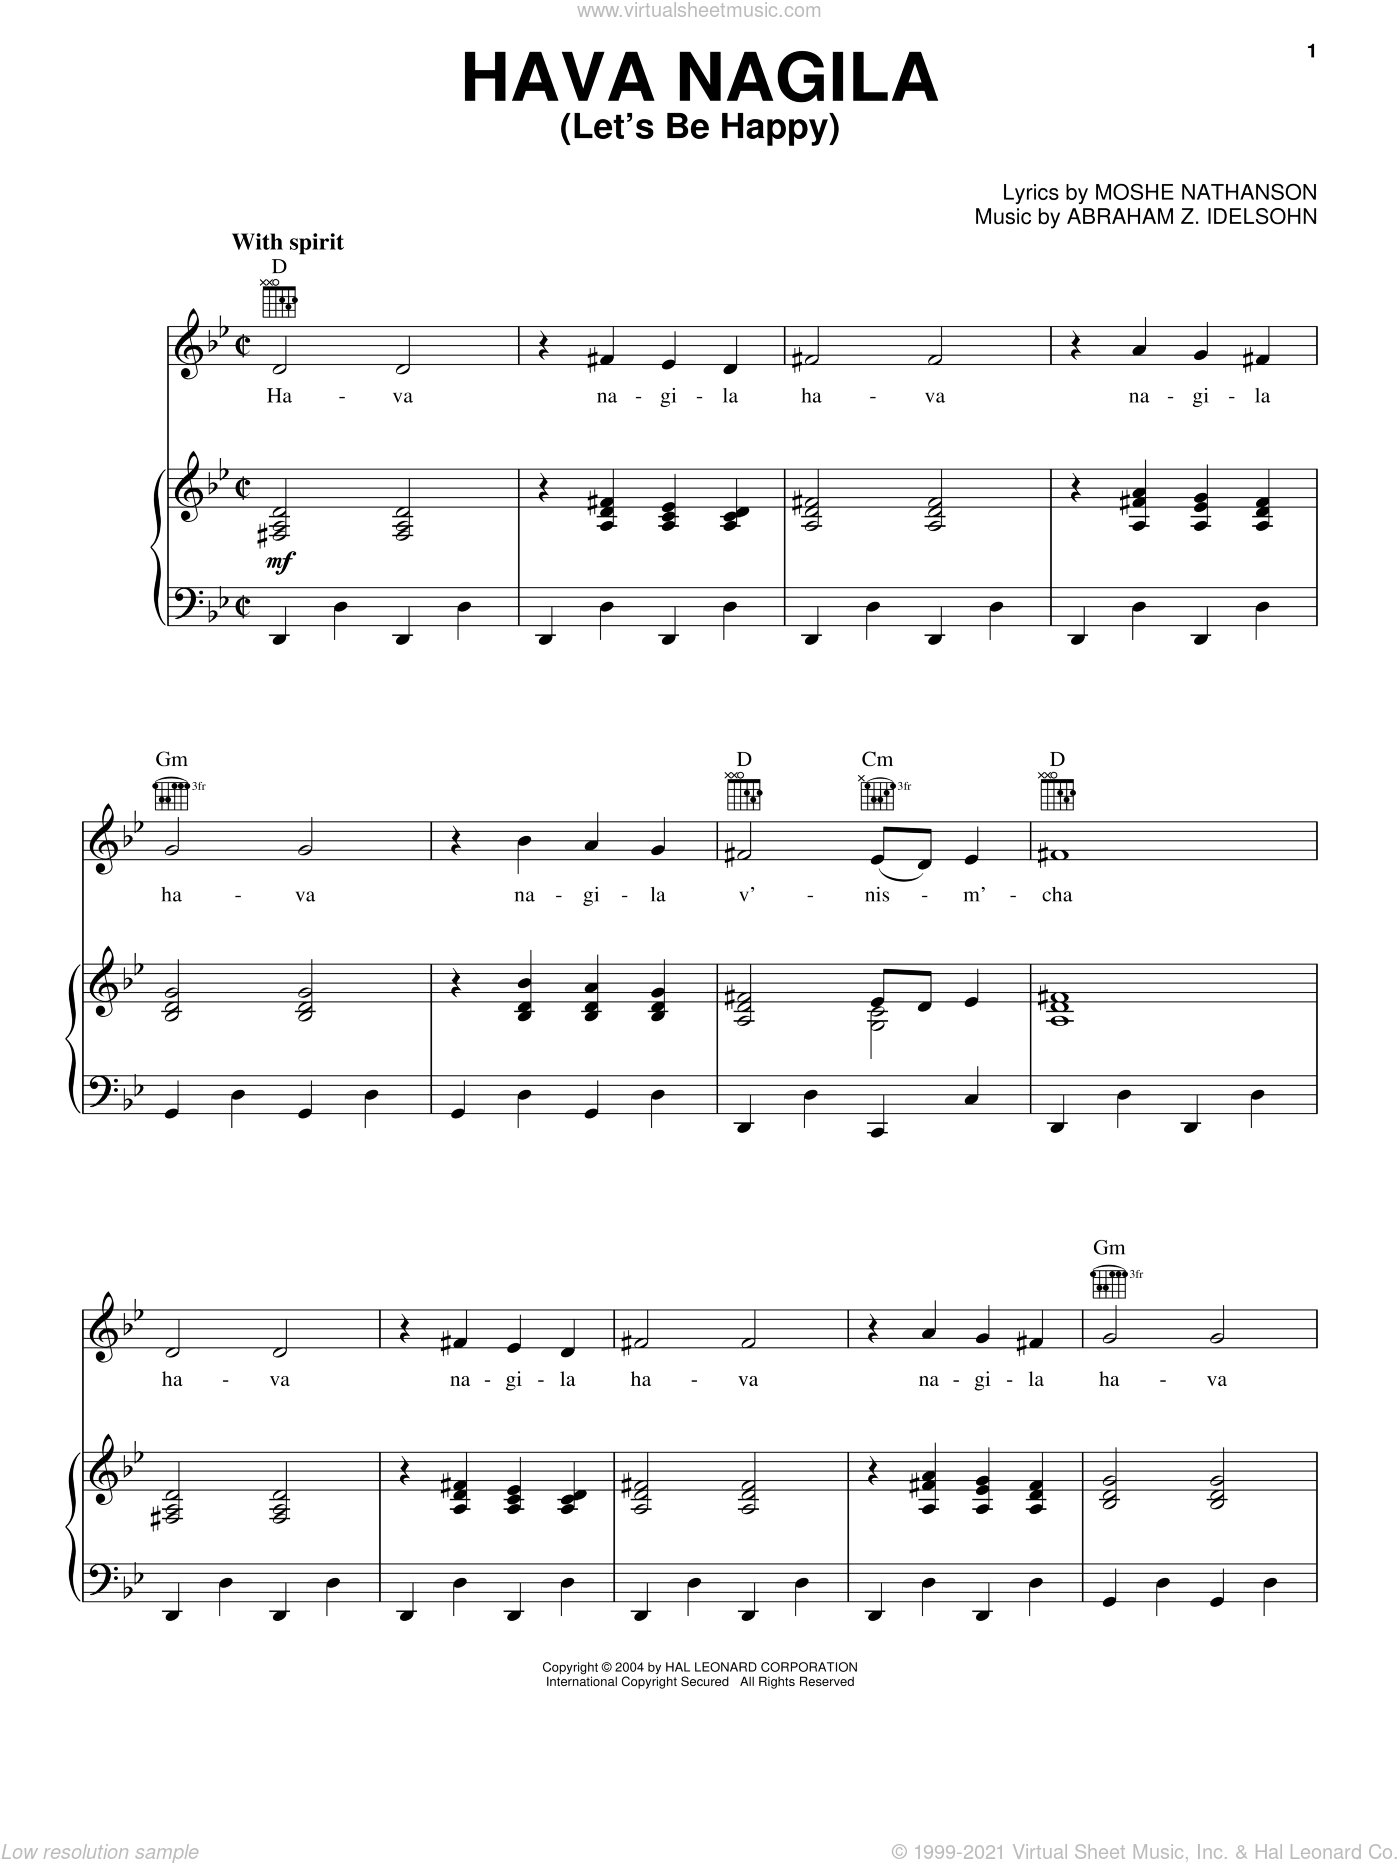 Hava Nagila (Let's Be Happy) sheet music for voice, piano or guitar by Moshe Nathanson and Abraham Z. Idelsohn, intermediate voice, piano or guitar. Score Image Preview.